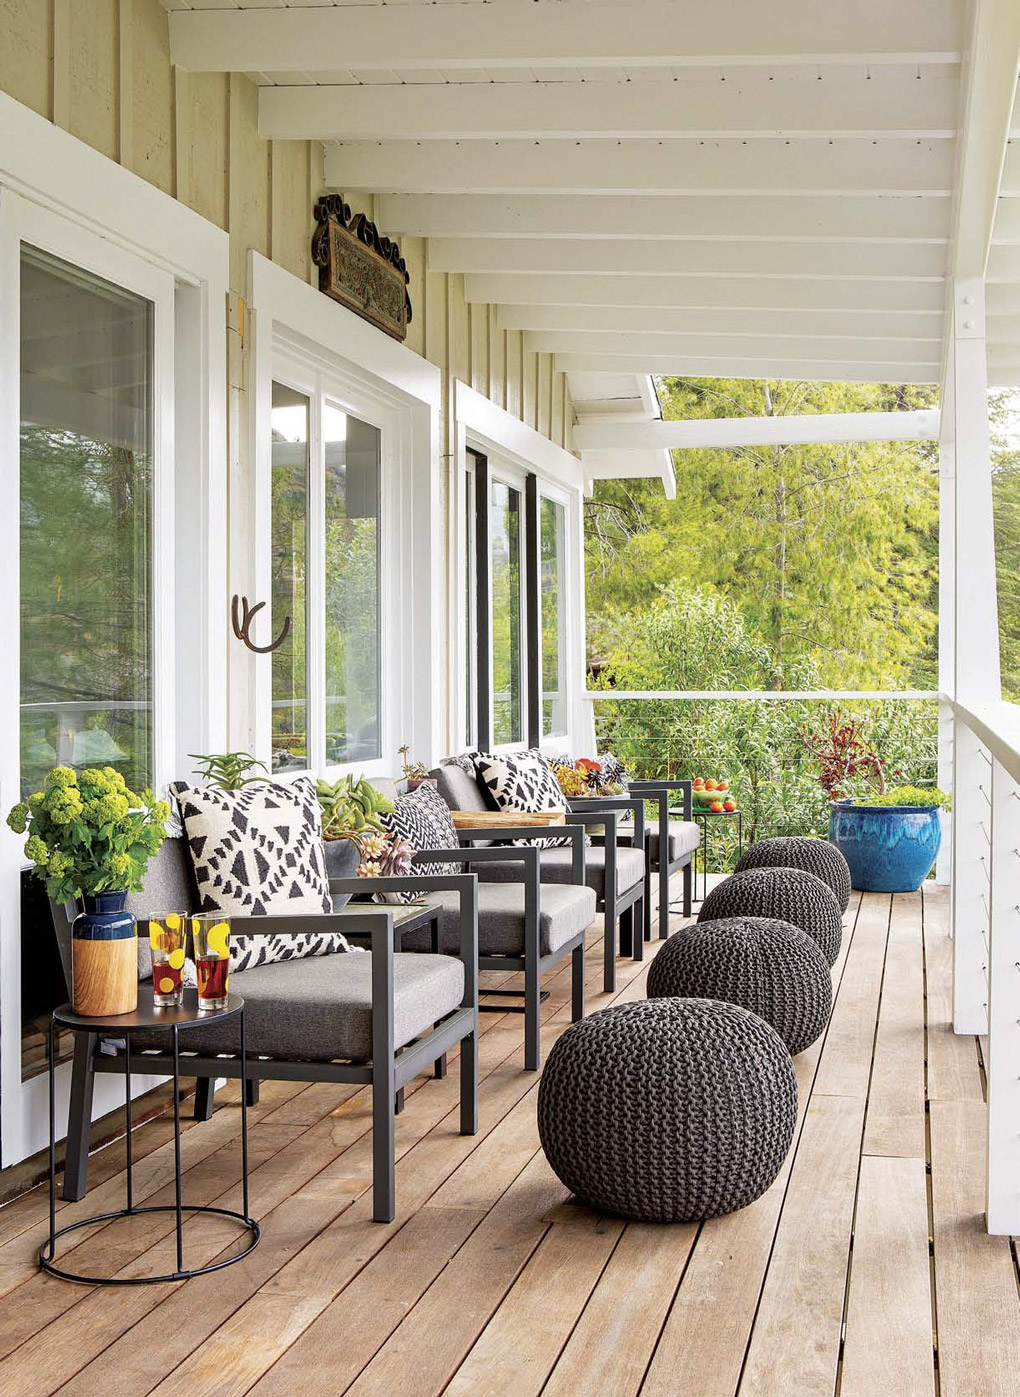 Lake house deck with wire railings in white and decorated with gray outdoor chairs and matching poufs as foot rests.